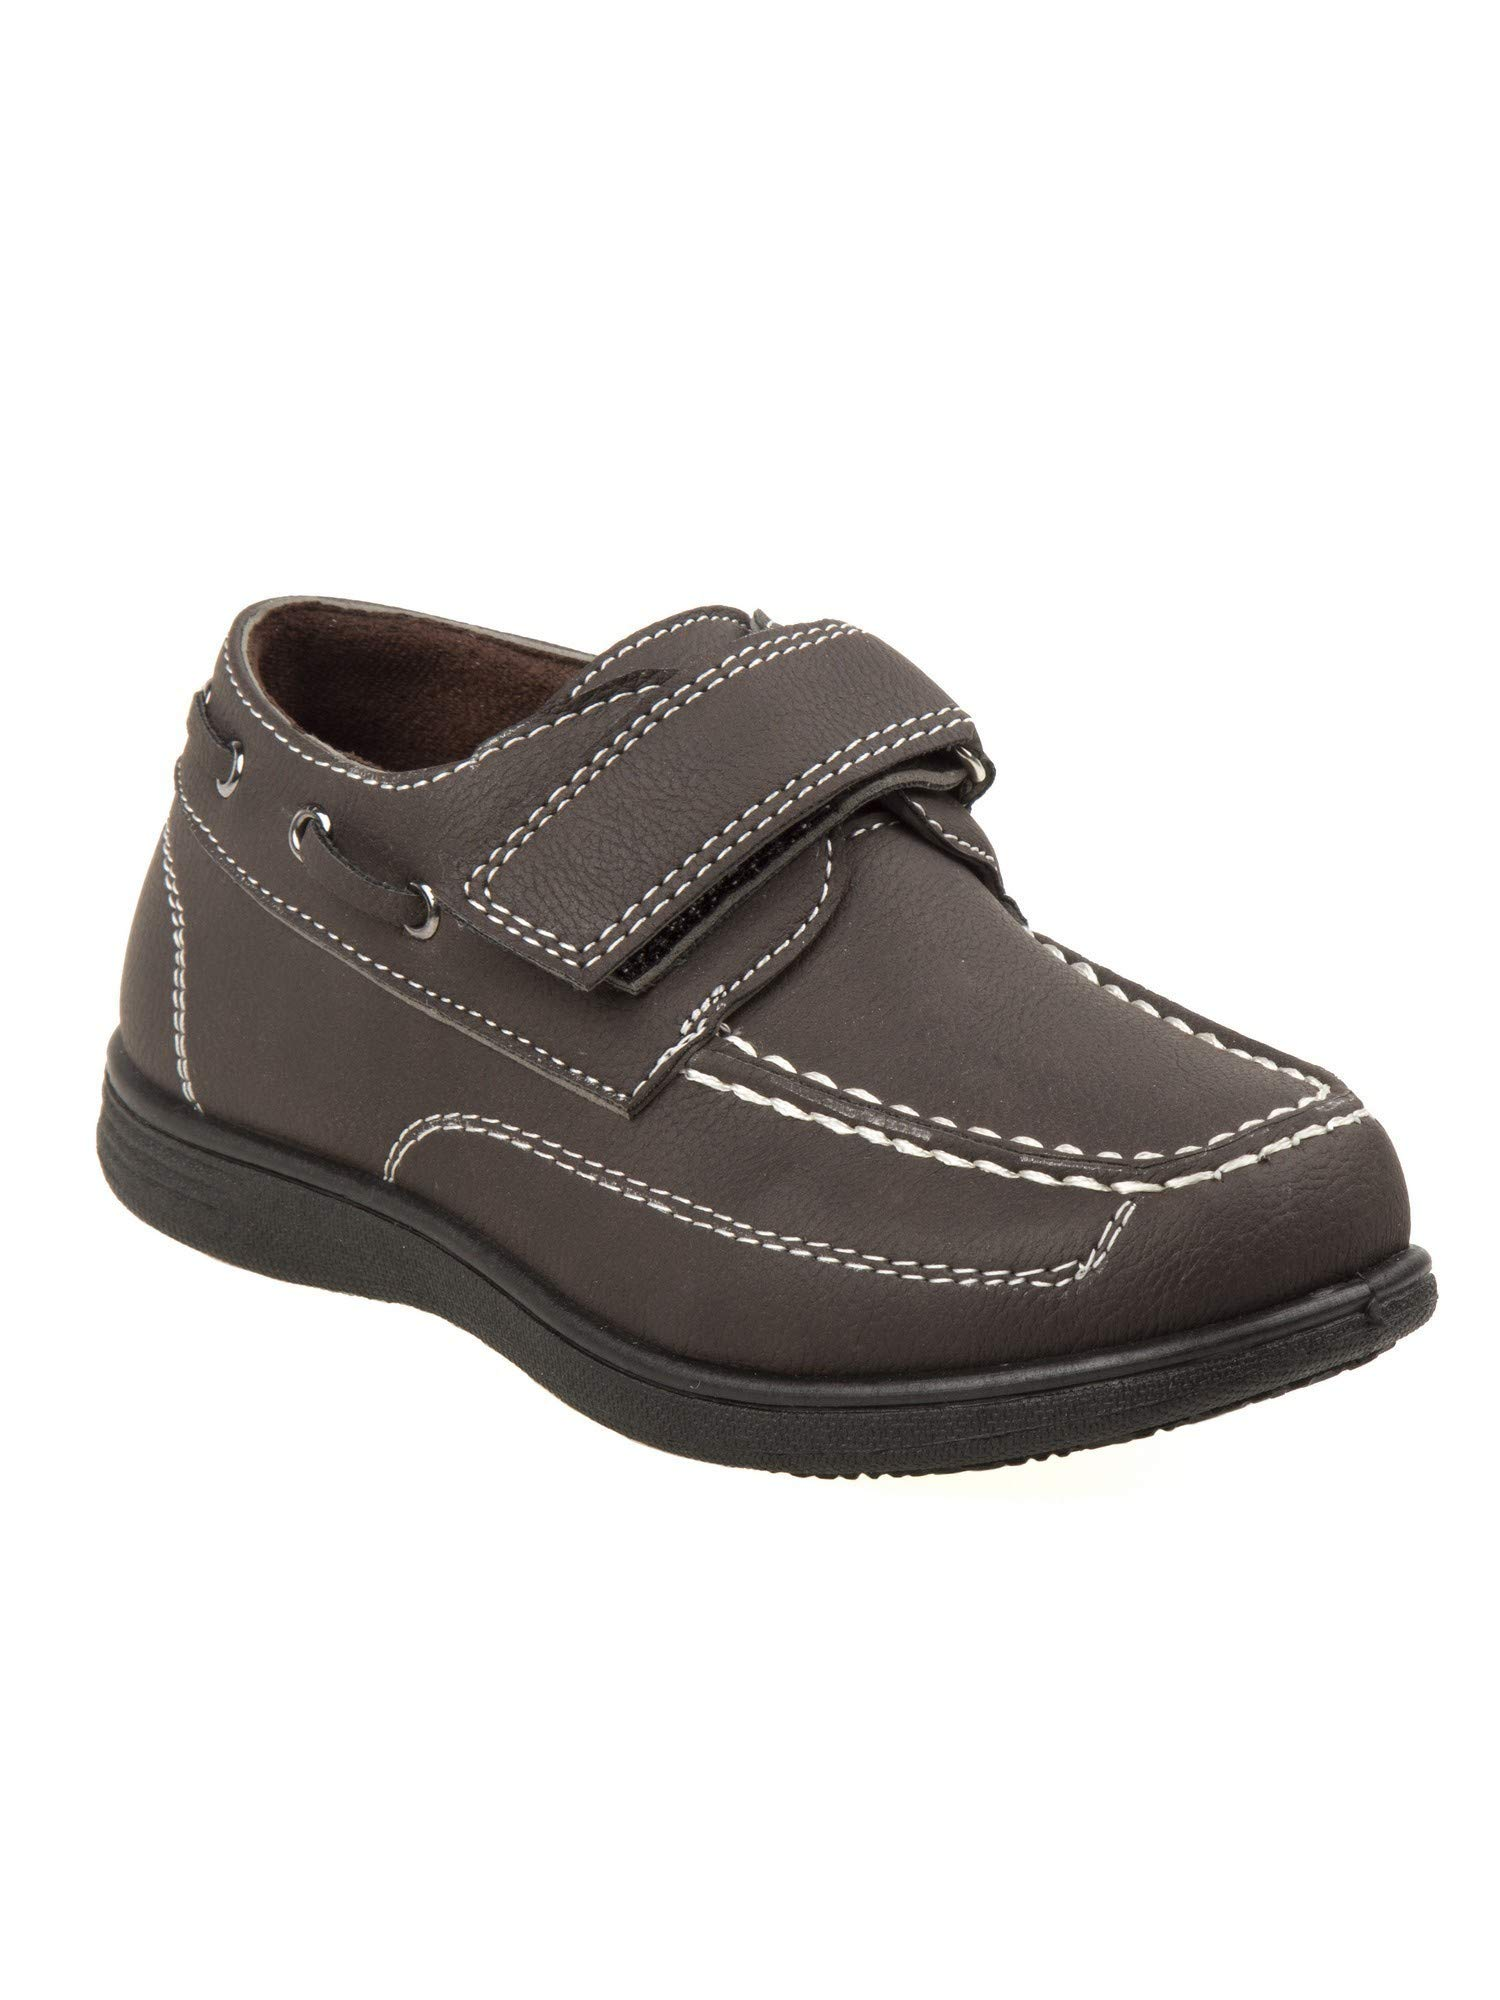 Josmo Boys Brown Stitching Detail Hook-And-Loop Strap Boat Shoes 4 Kids